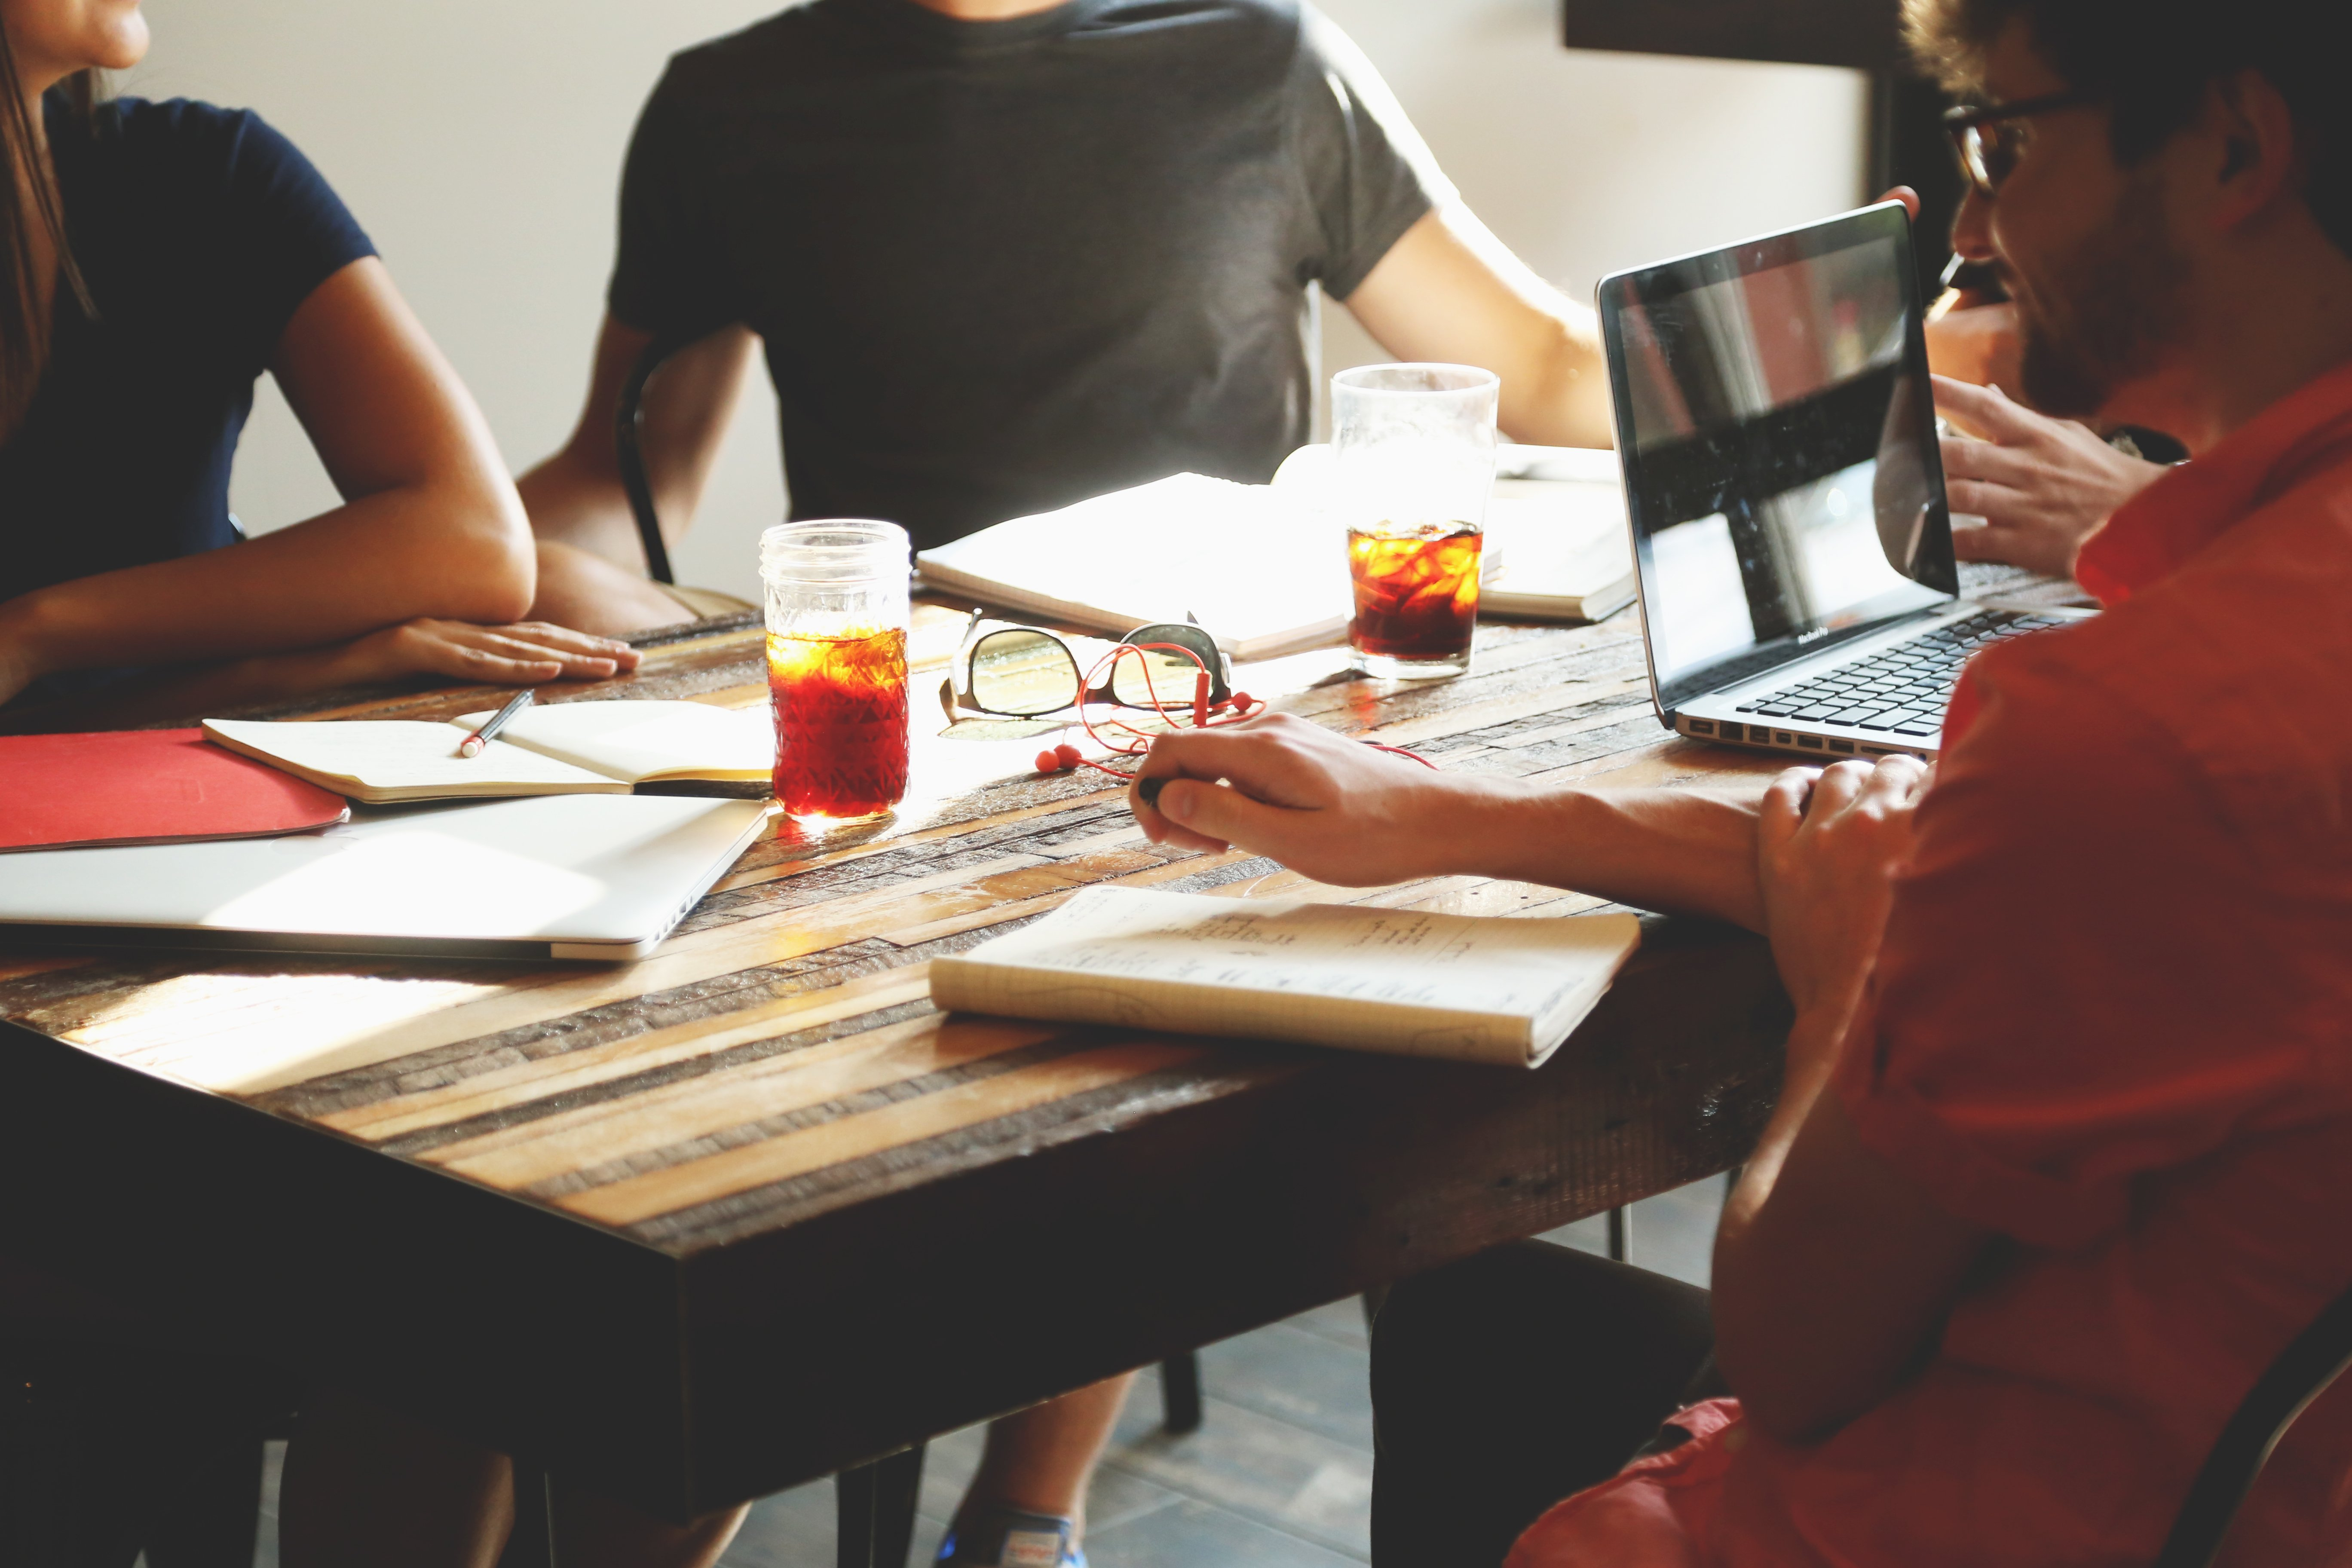 What You Need To Know About Employing Staff